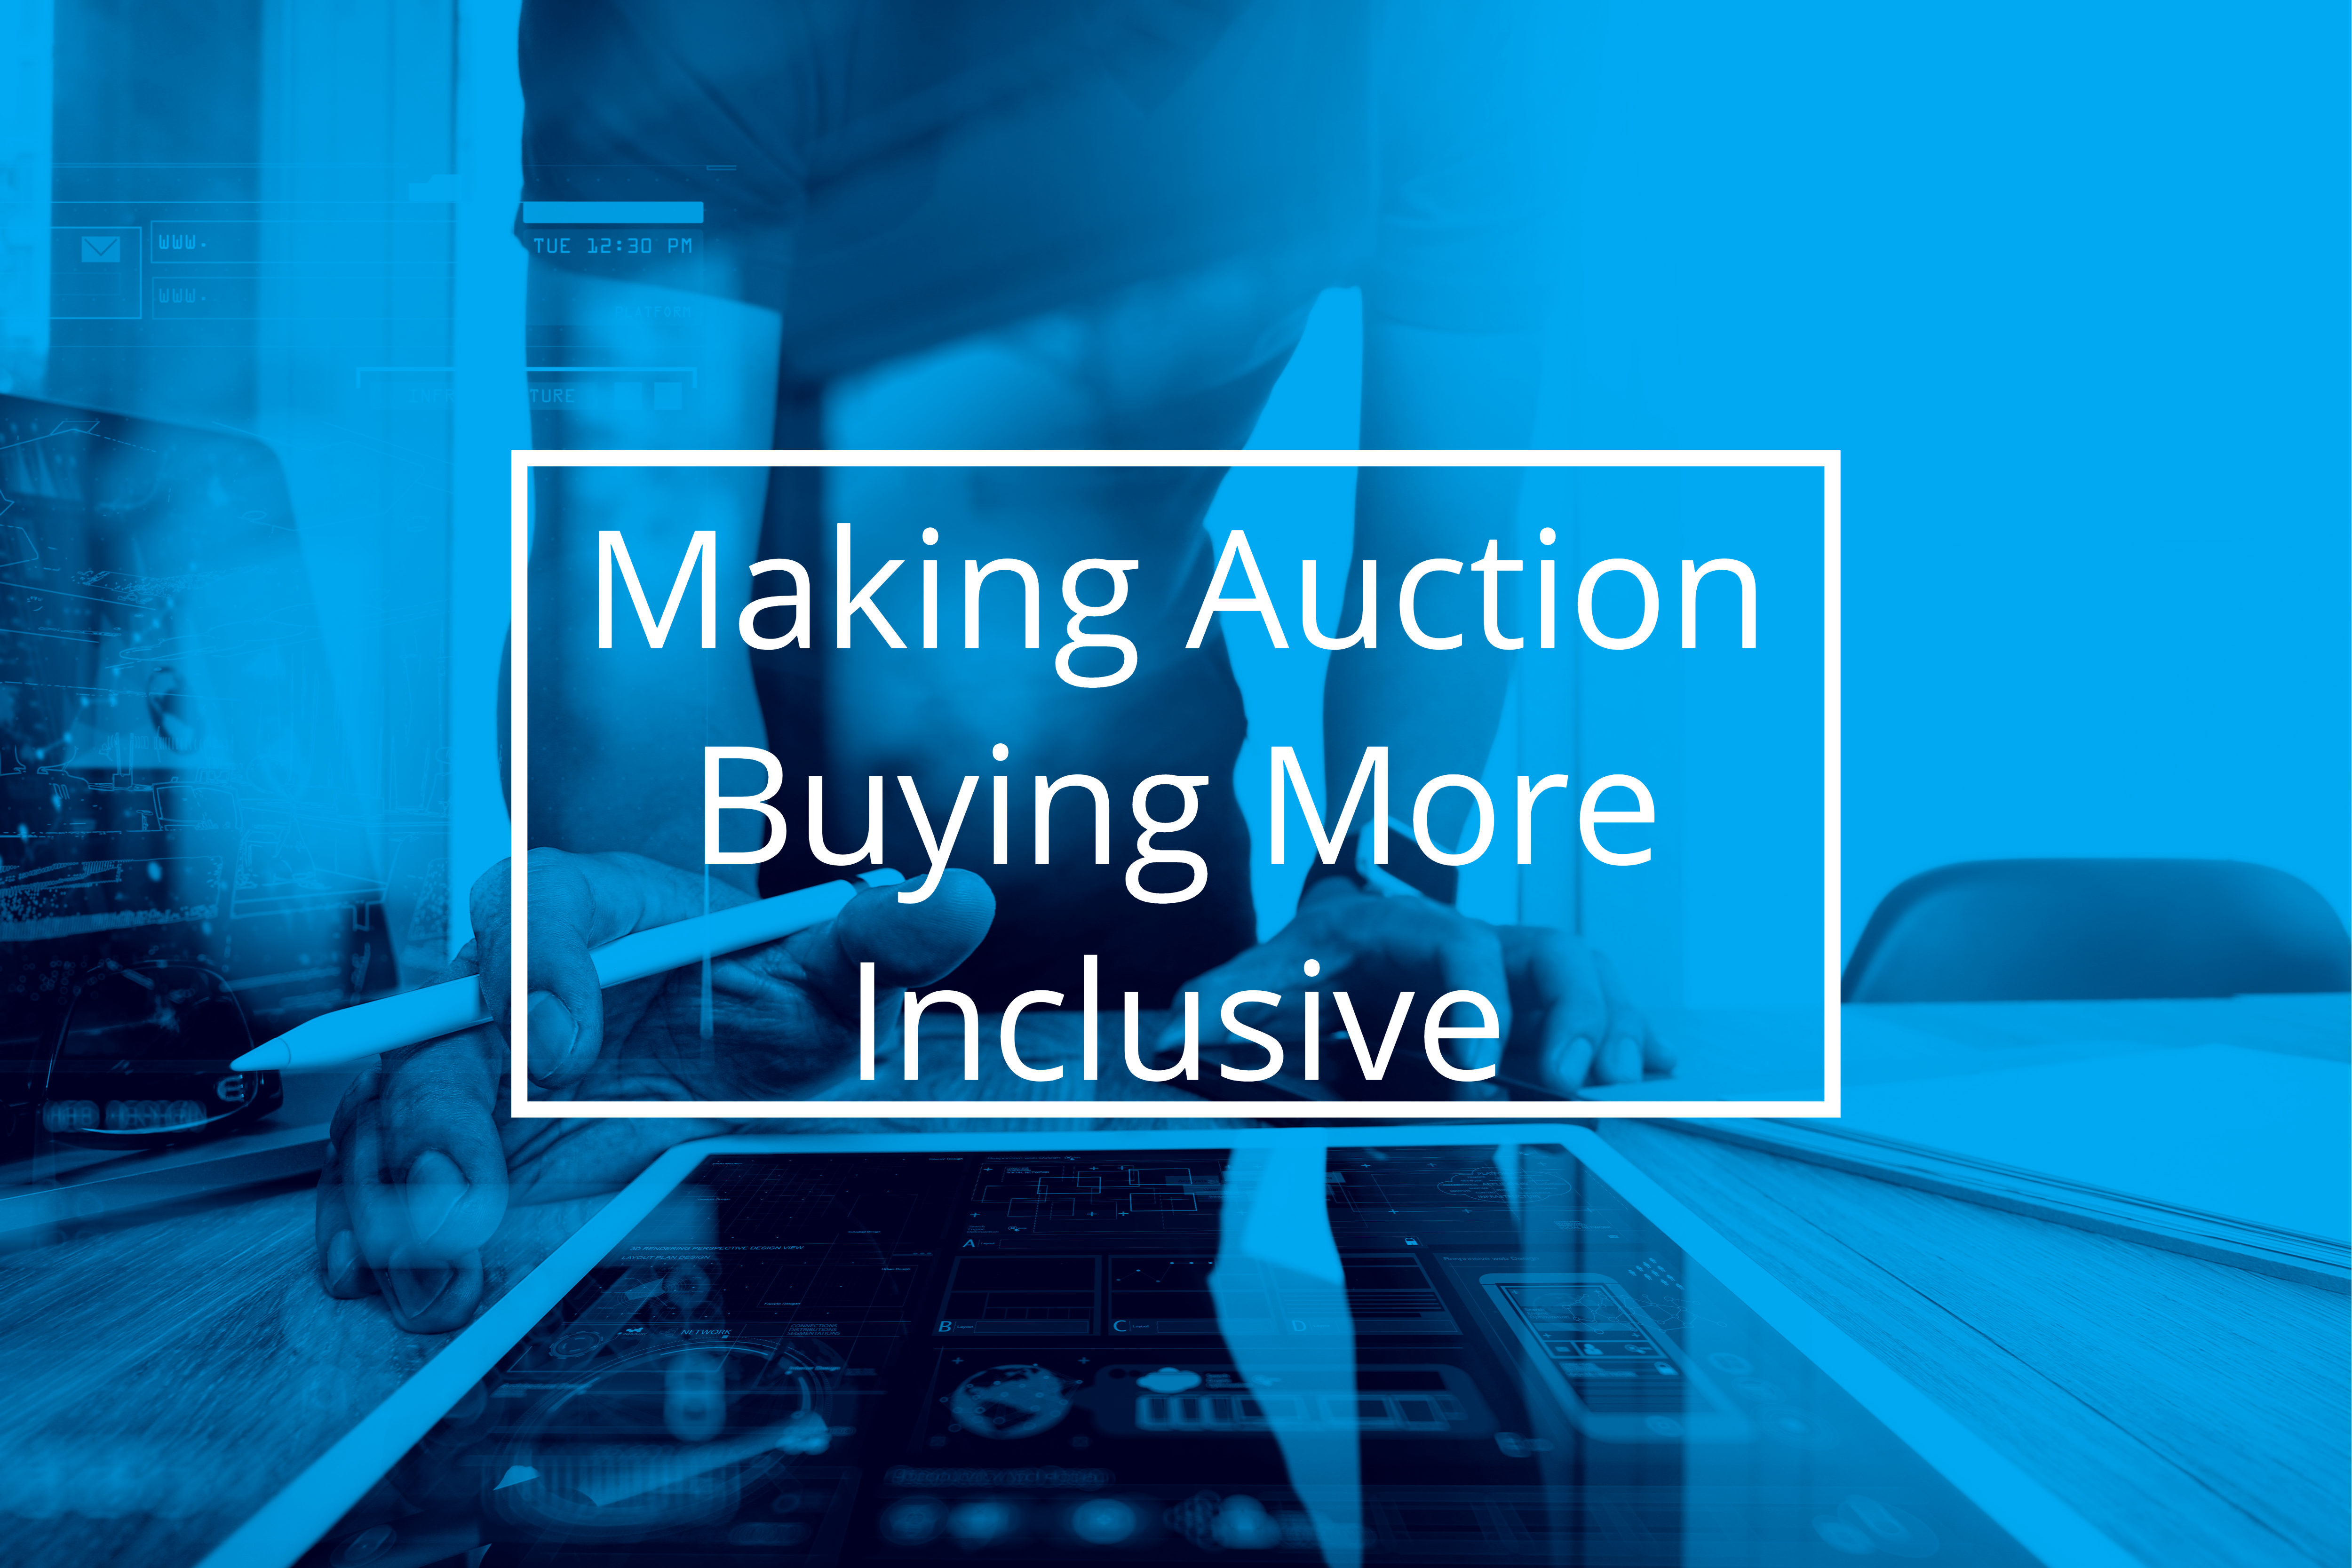 How We Are Making Auction Buying More Inclusive